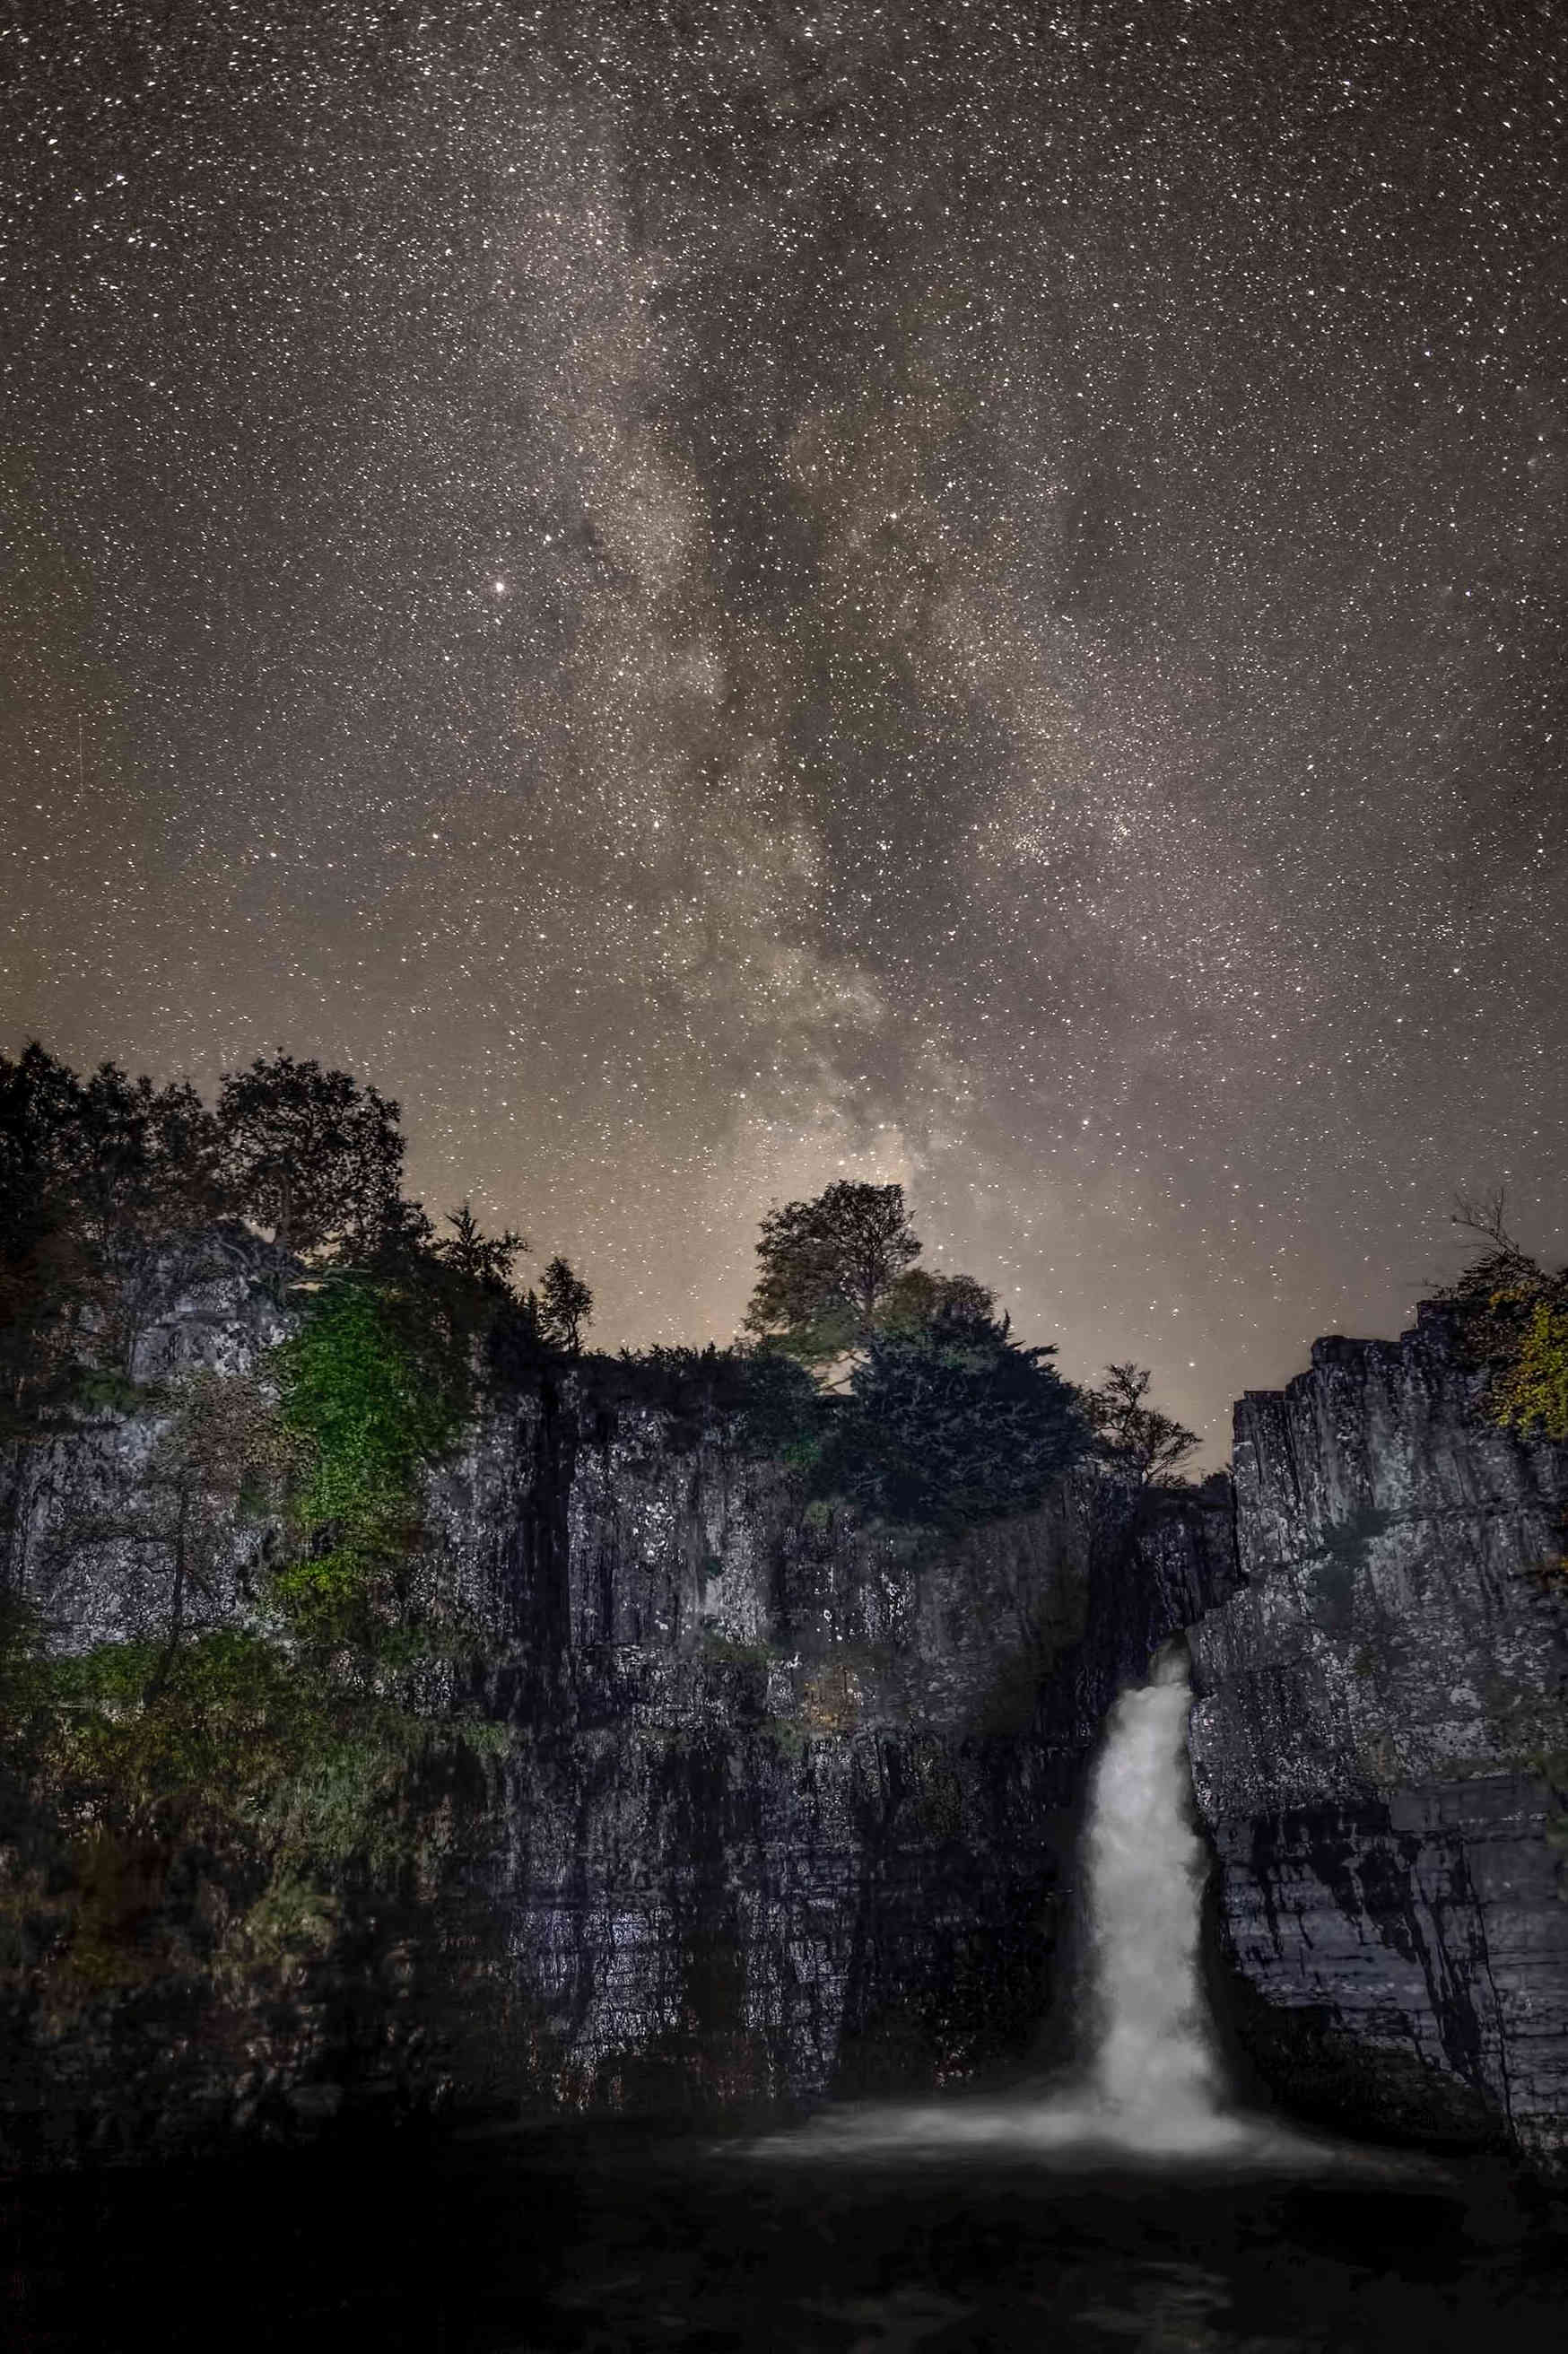 The Milky Way over High Force waterfall